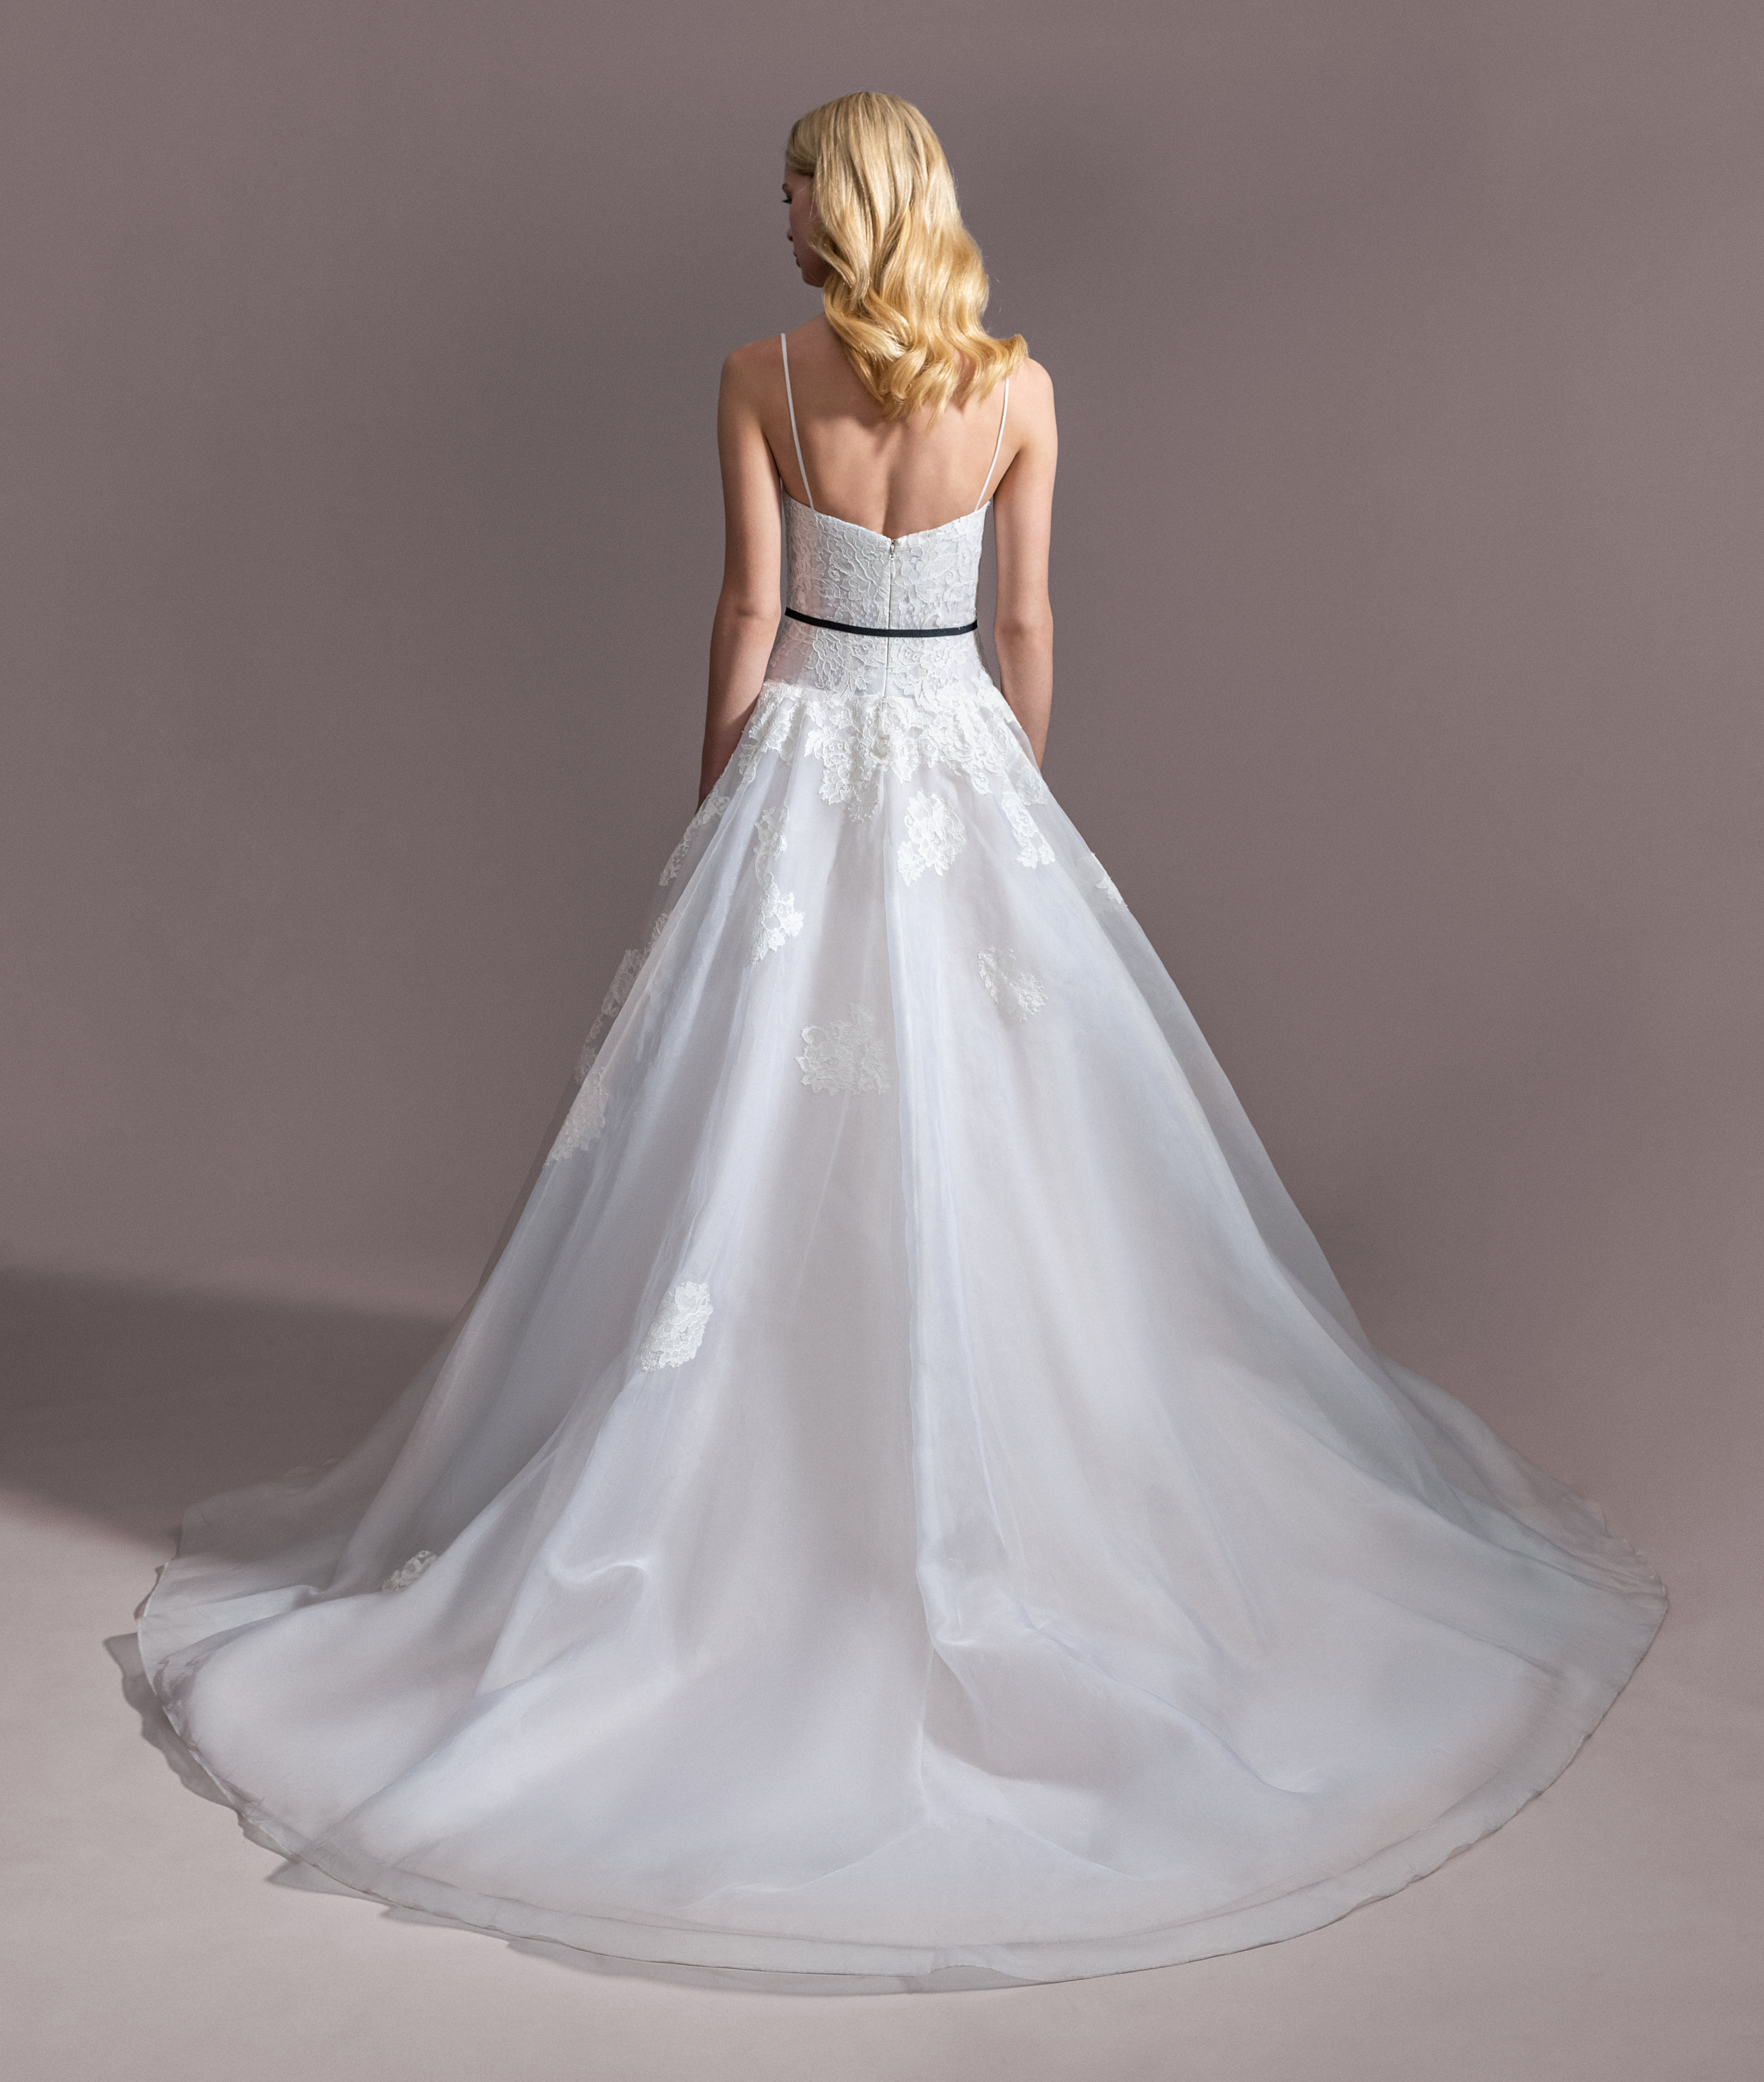 Spaghetti Strap Sweetheart Ballgown Wedding Dress With